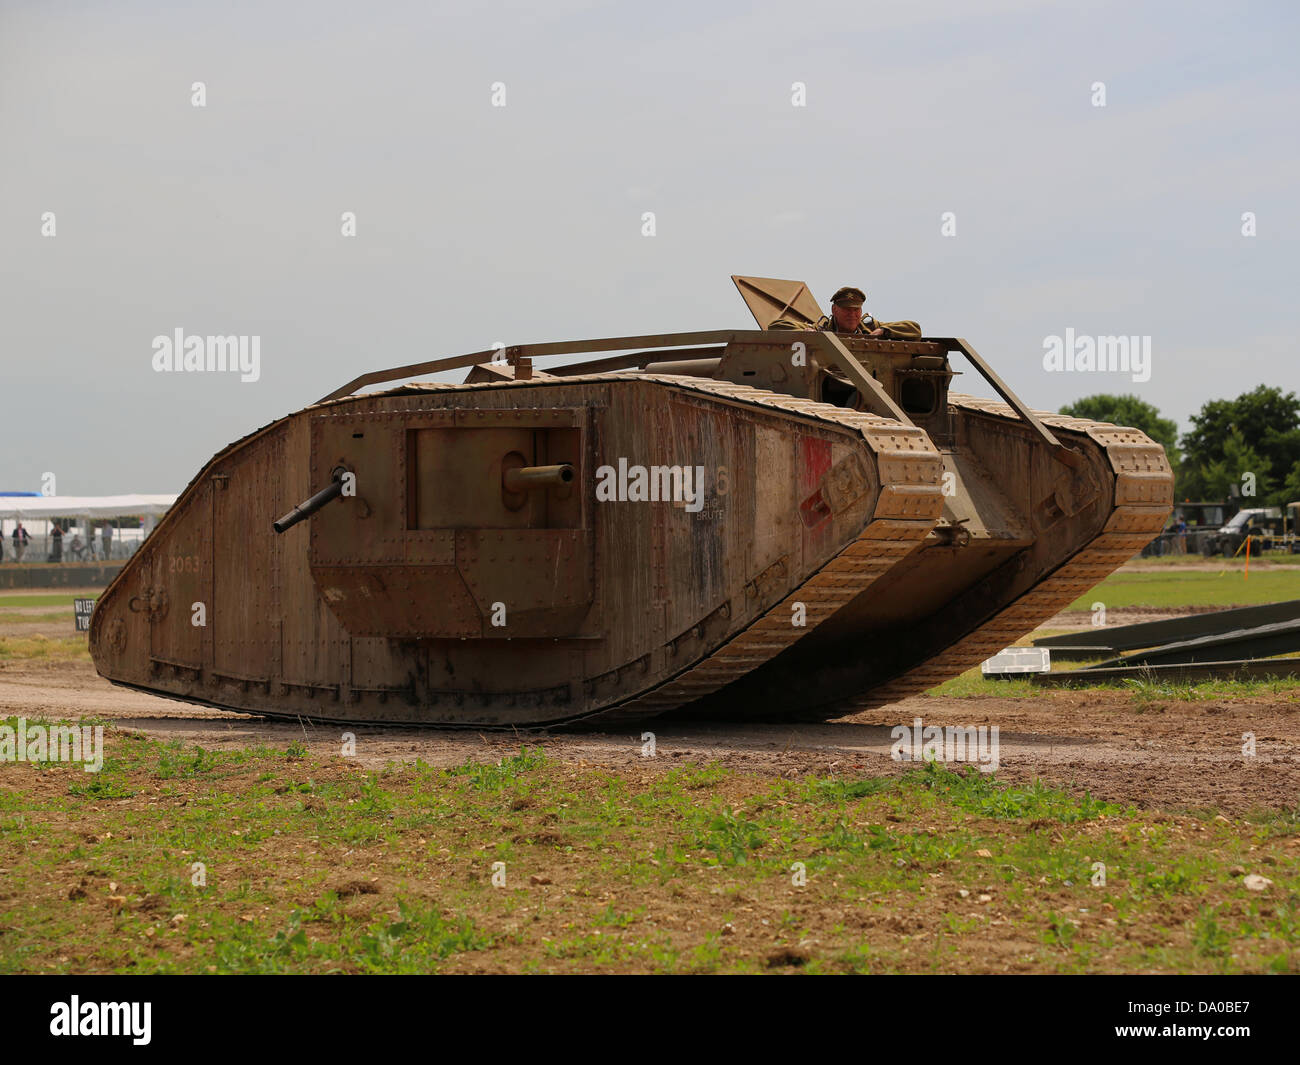 Bovington, UK. 29th June, 2013. The Mark IV was the commonest tank used by the British Army during the Great War - Stock Image